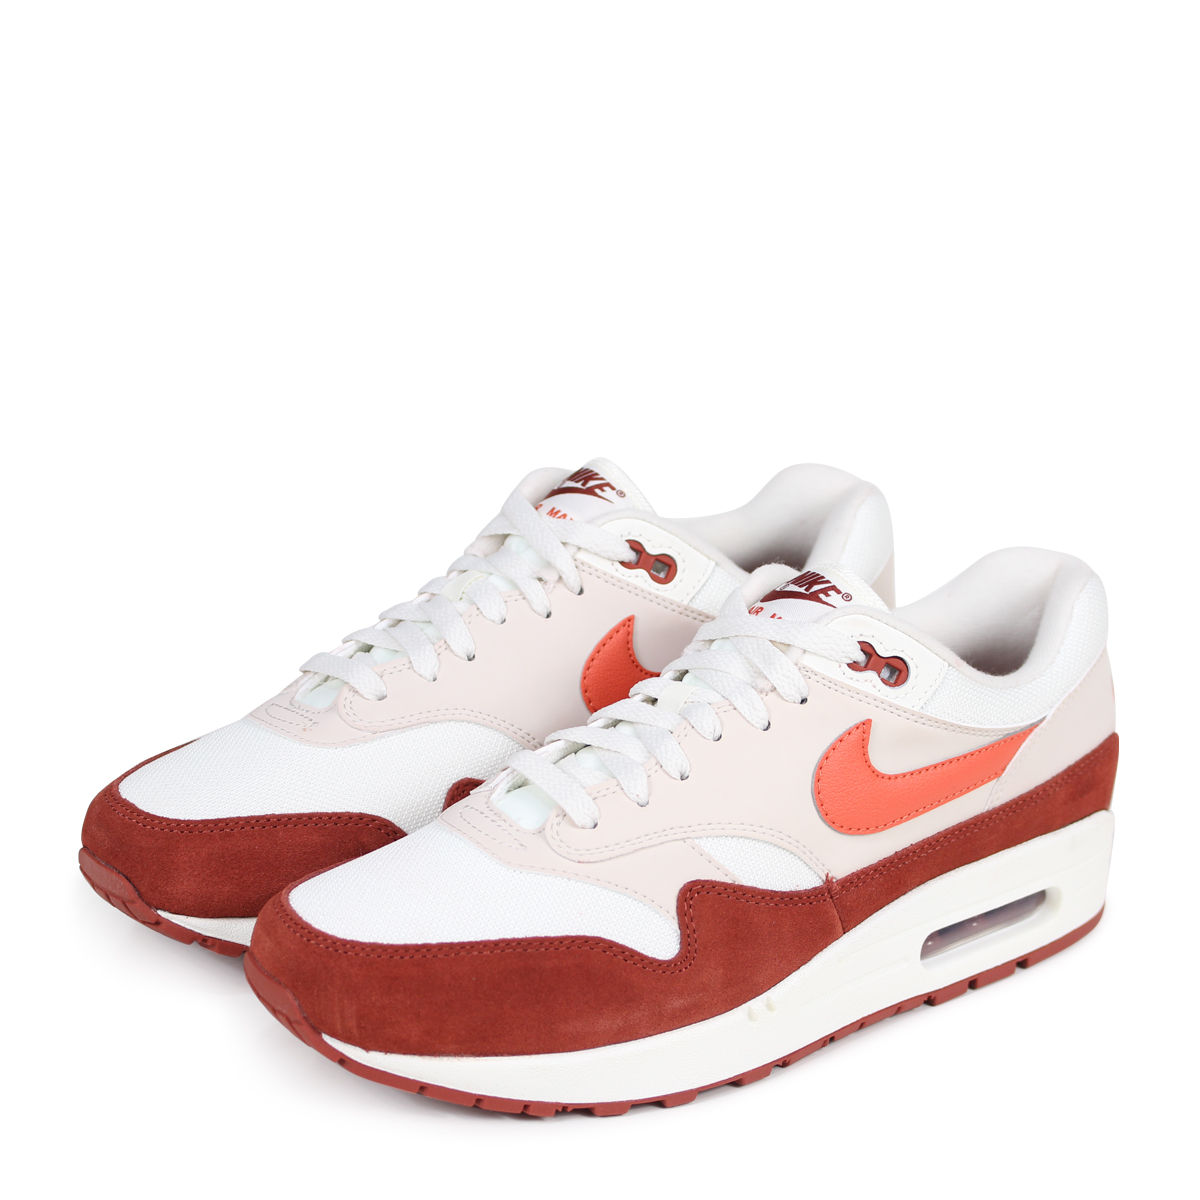 NIKE AIR MAX 1 Kie Ney AMAX 1 sneakers men AH8145 104 off white [load planned Shinnyu load in reservation product 413 containing] [184]